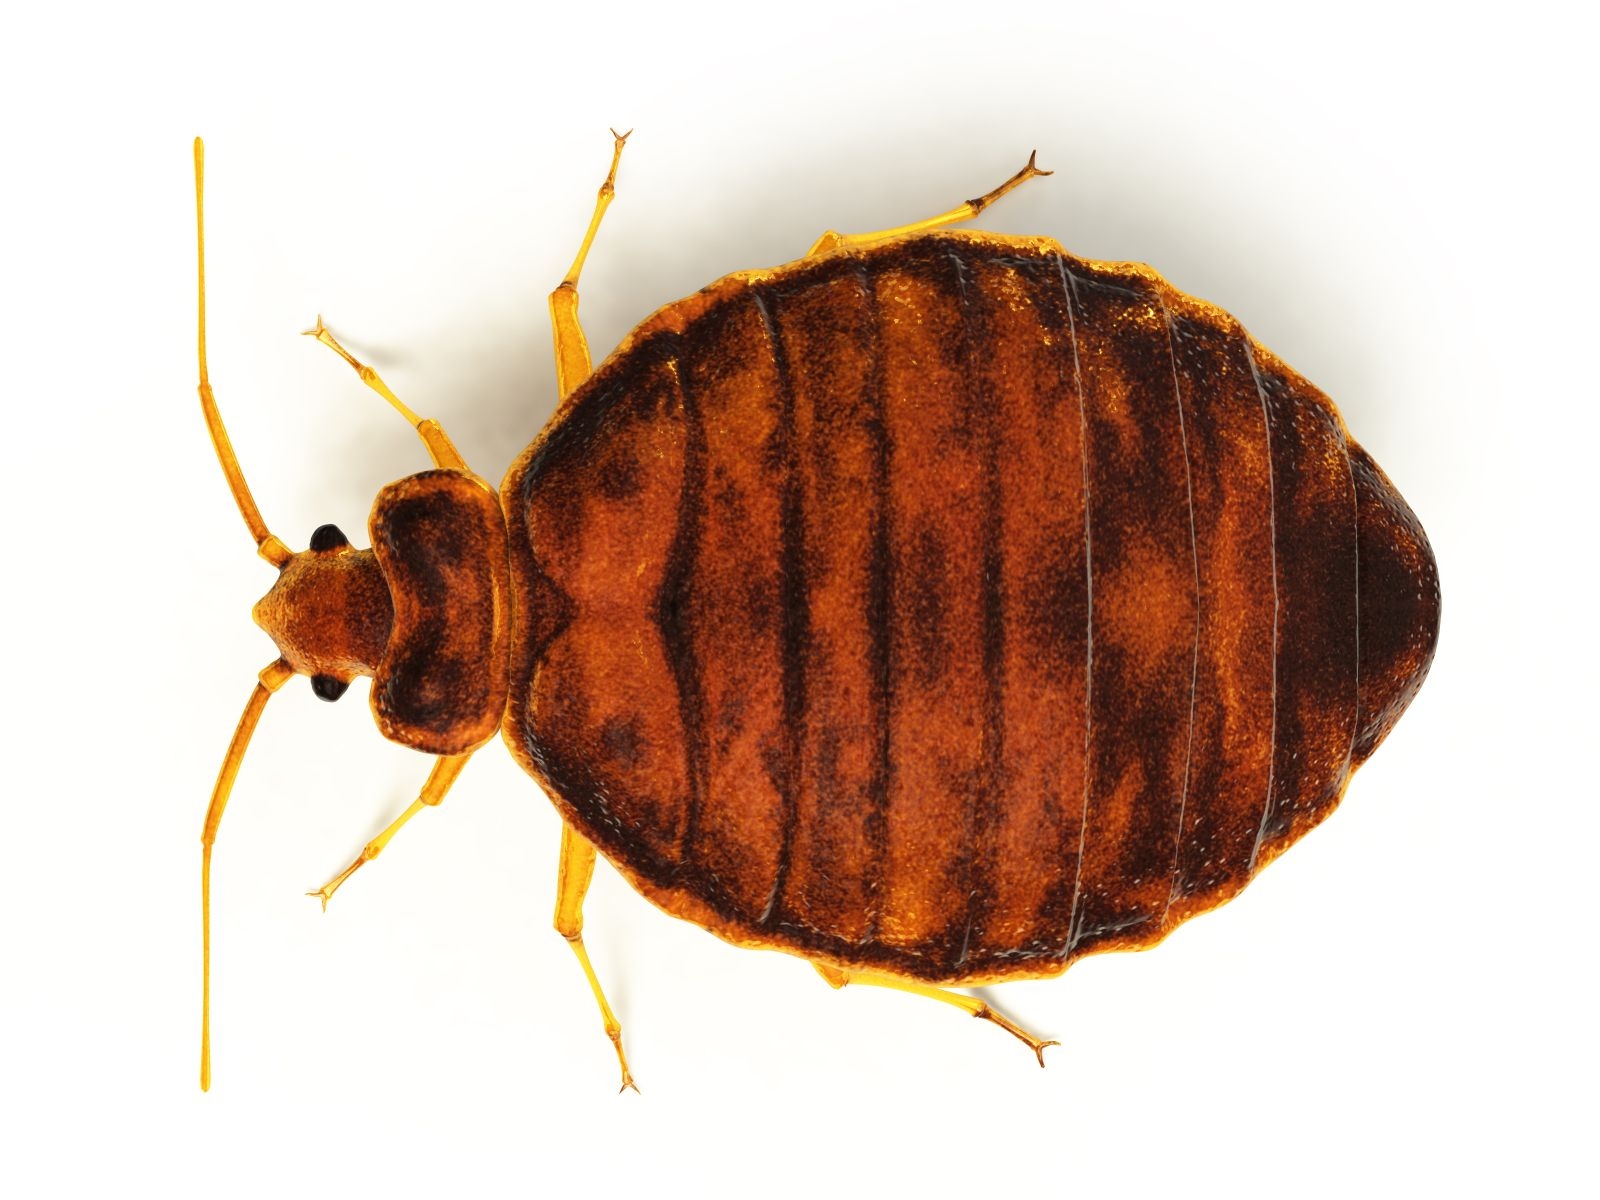 Learn More About Bed Bugs And Prevention Bed Bugs Bed Bug Trap